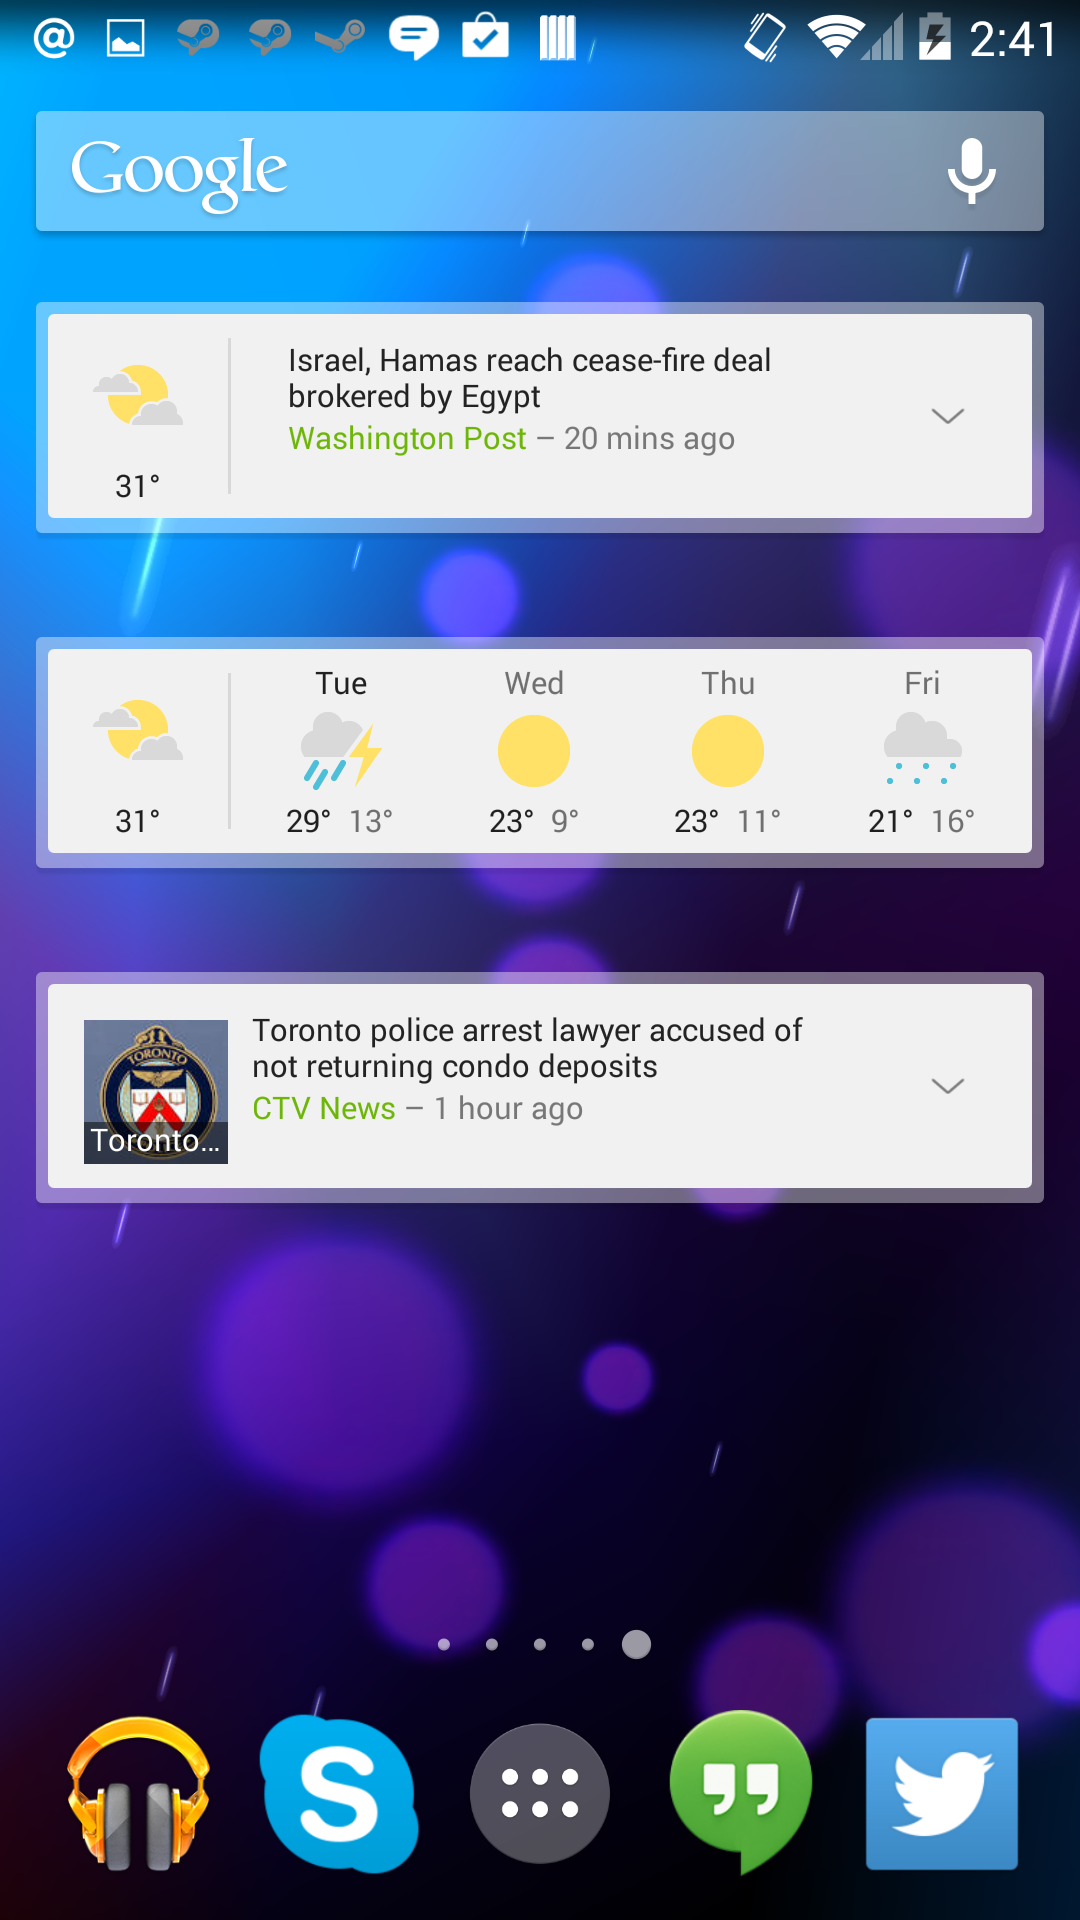 Google's News & Weather App Updated to Version 2 0